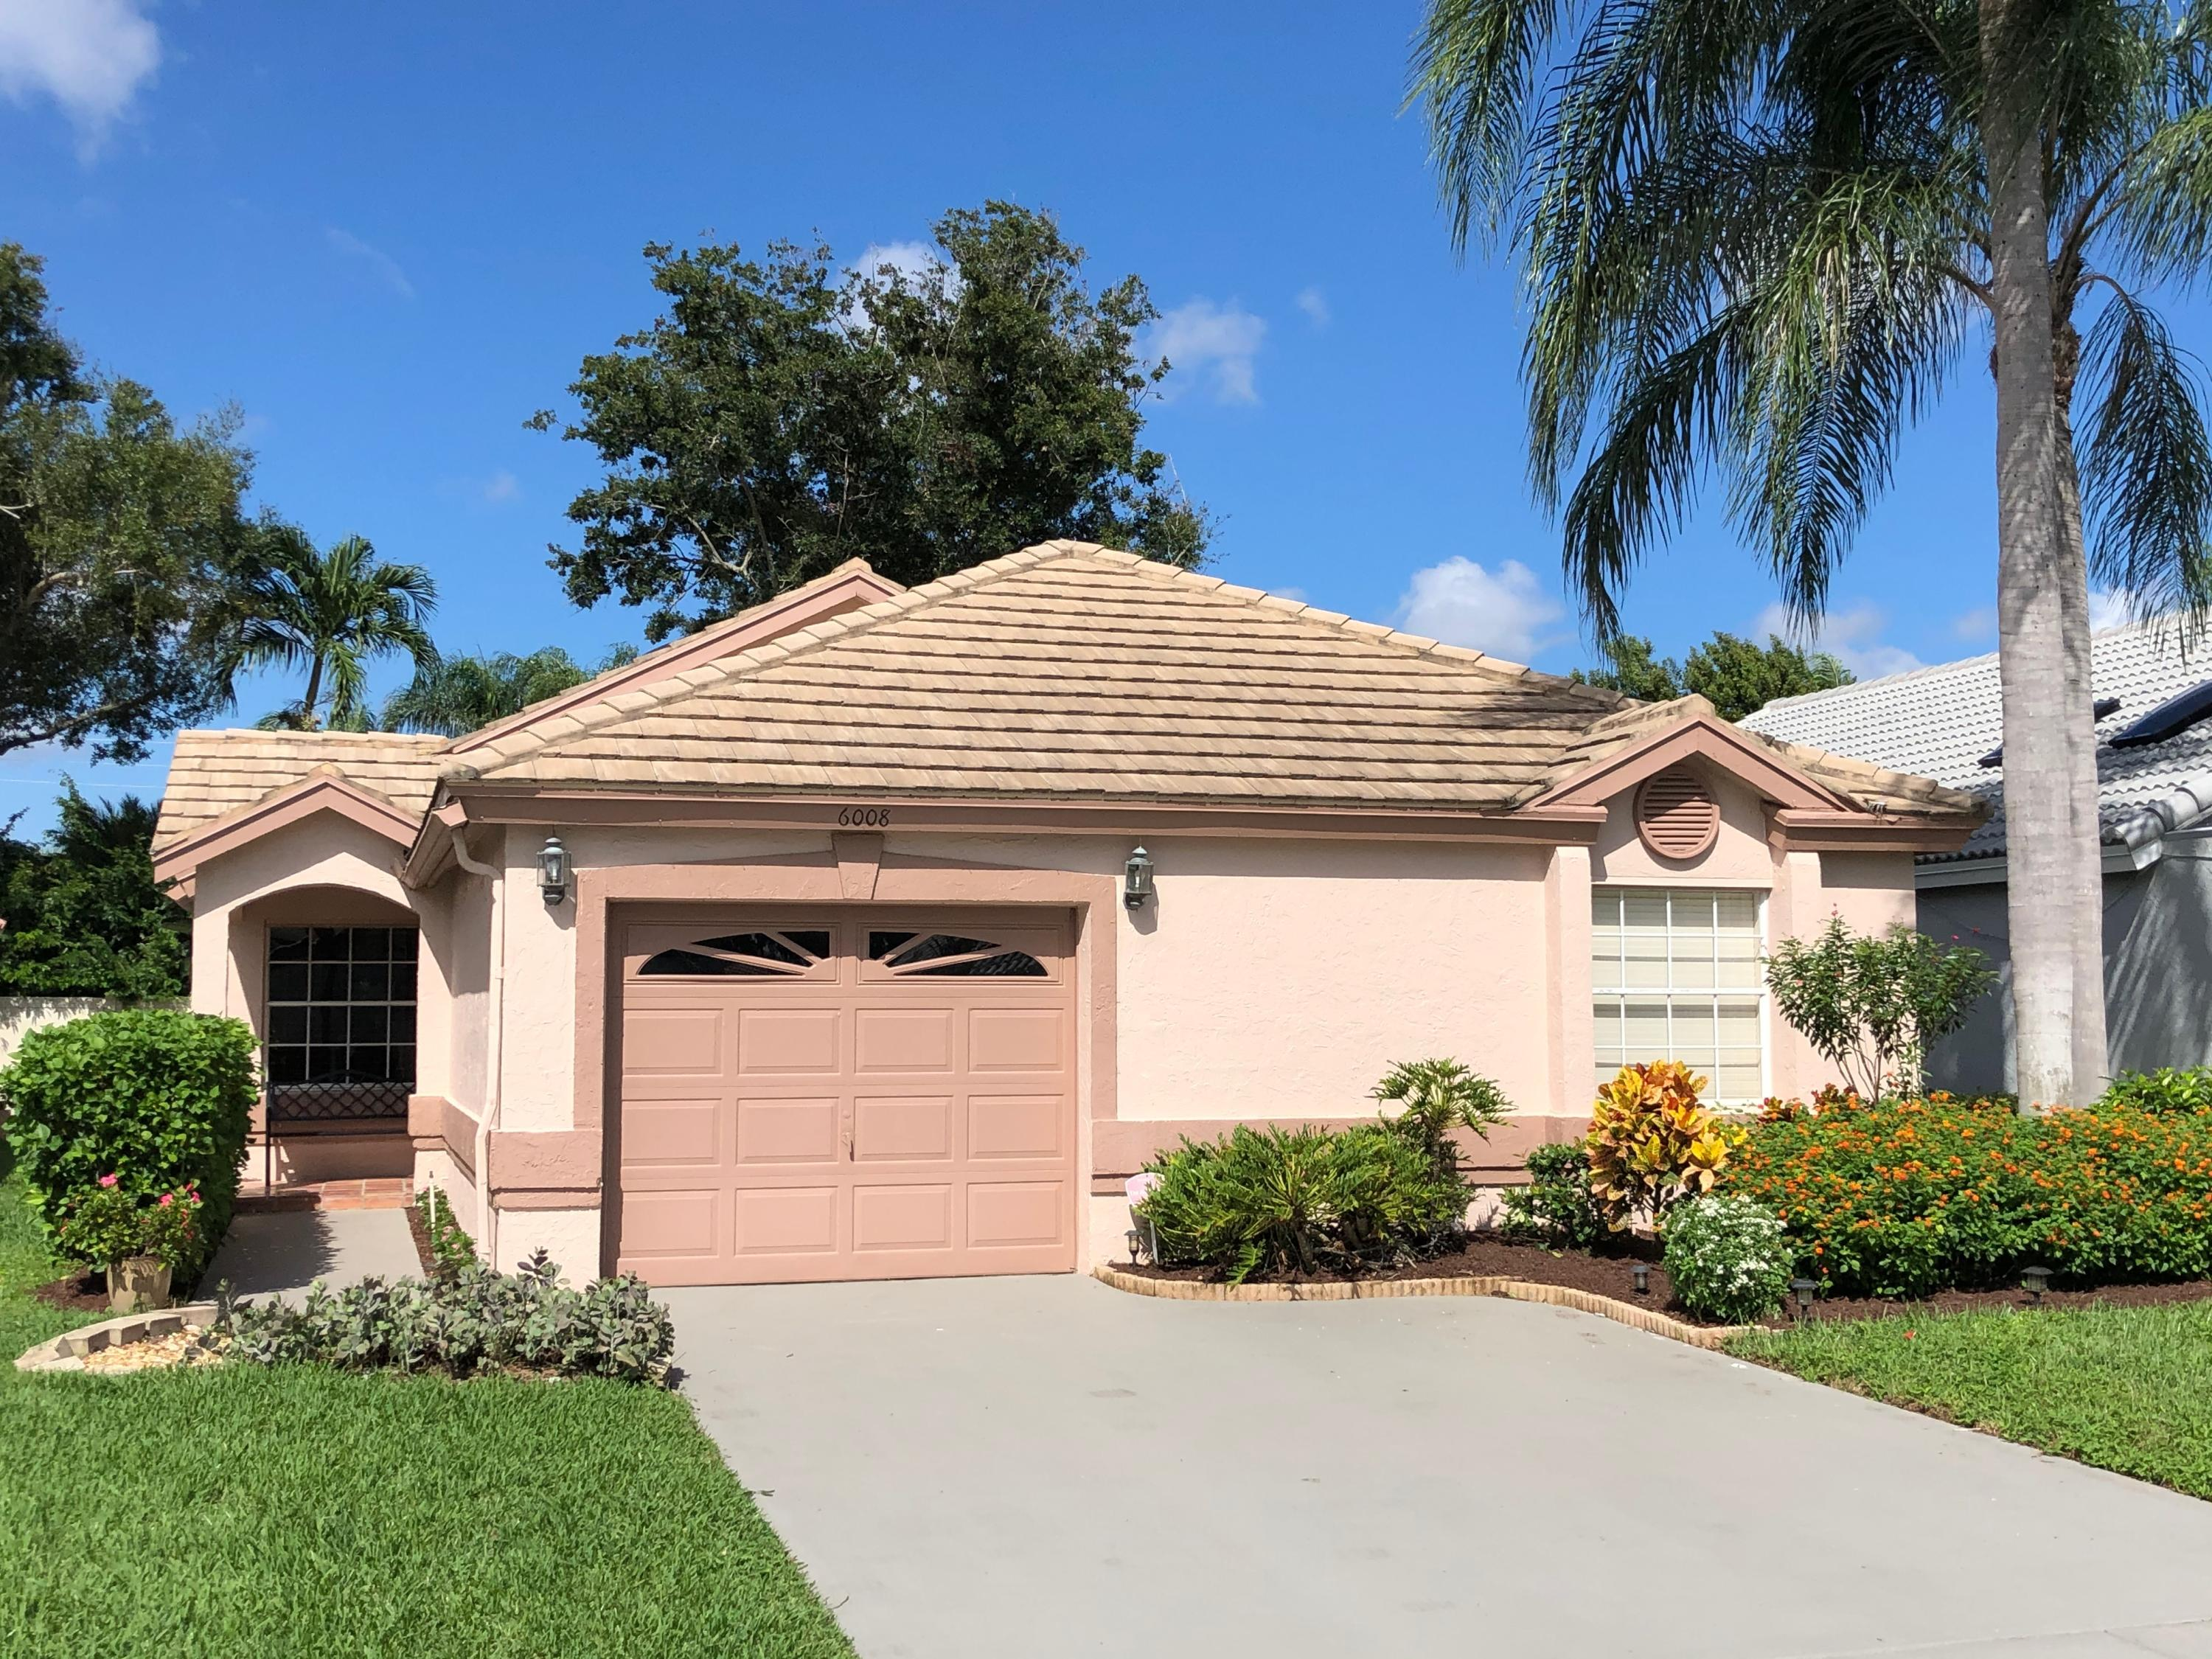 Home for sale in Sawgrass Lakes Homes Boynton Beach Florida